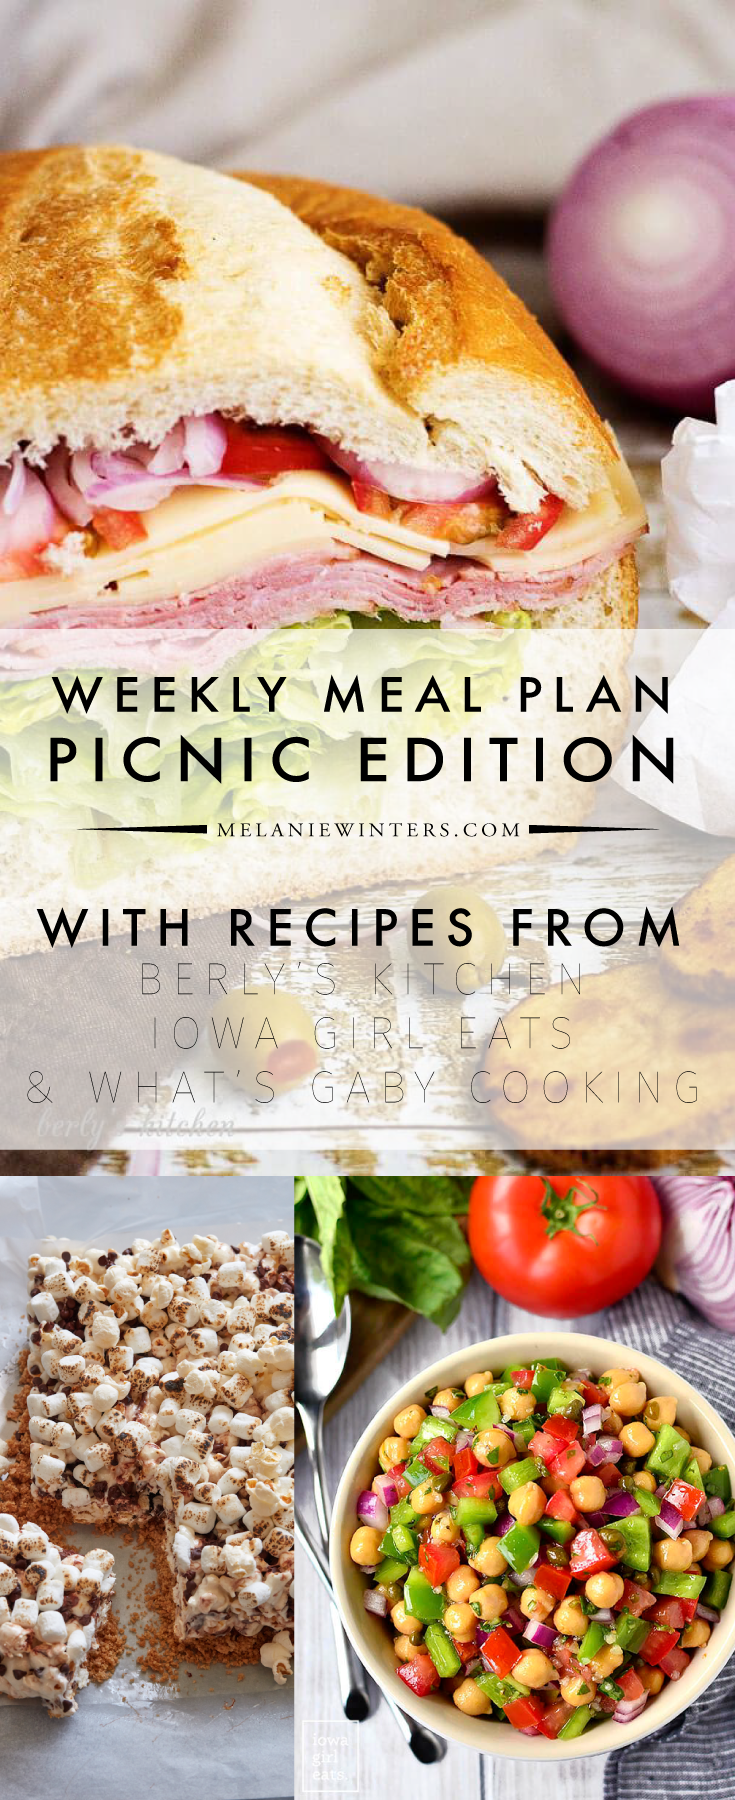 Less is more when it comes to outdoor picnics. Check out some of our favorite picnic ideas and recipes.